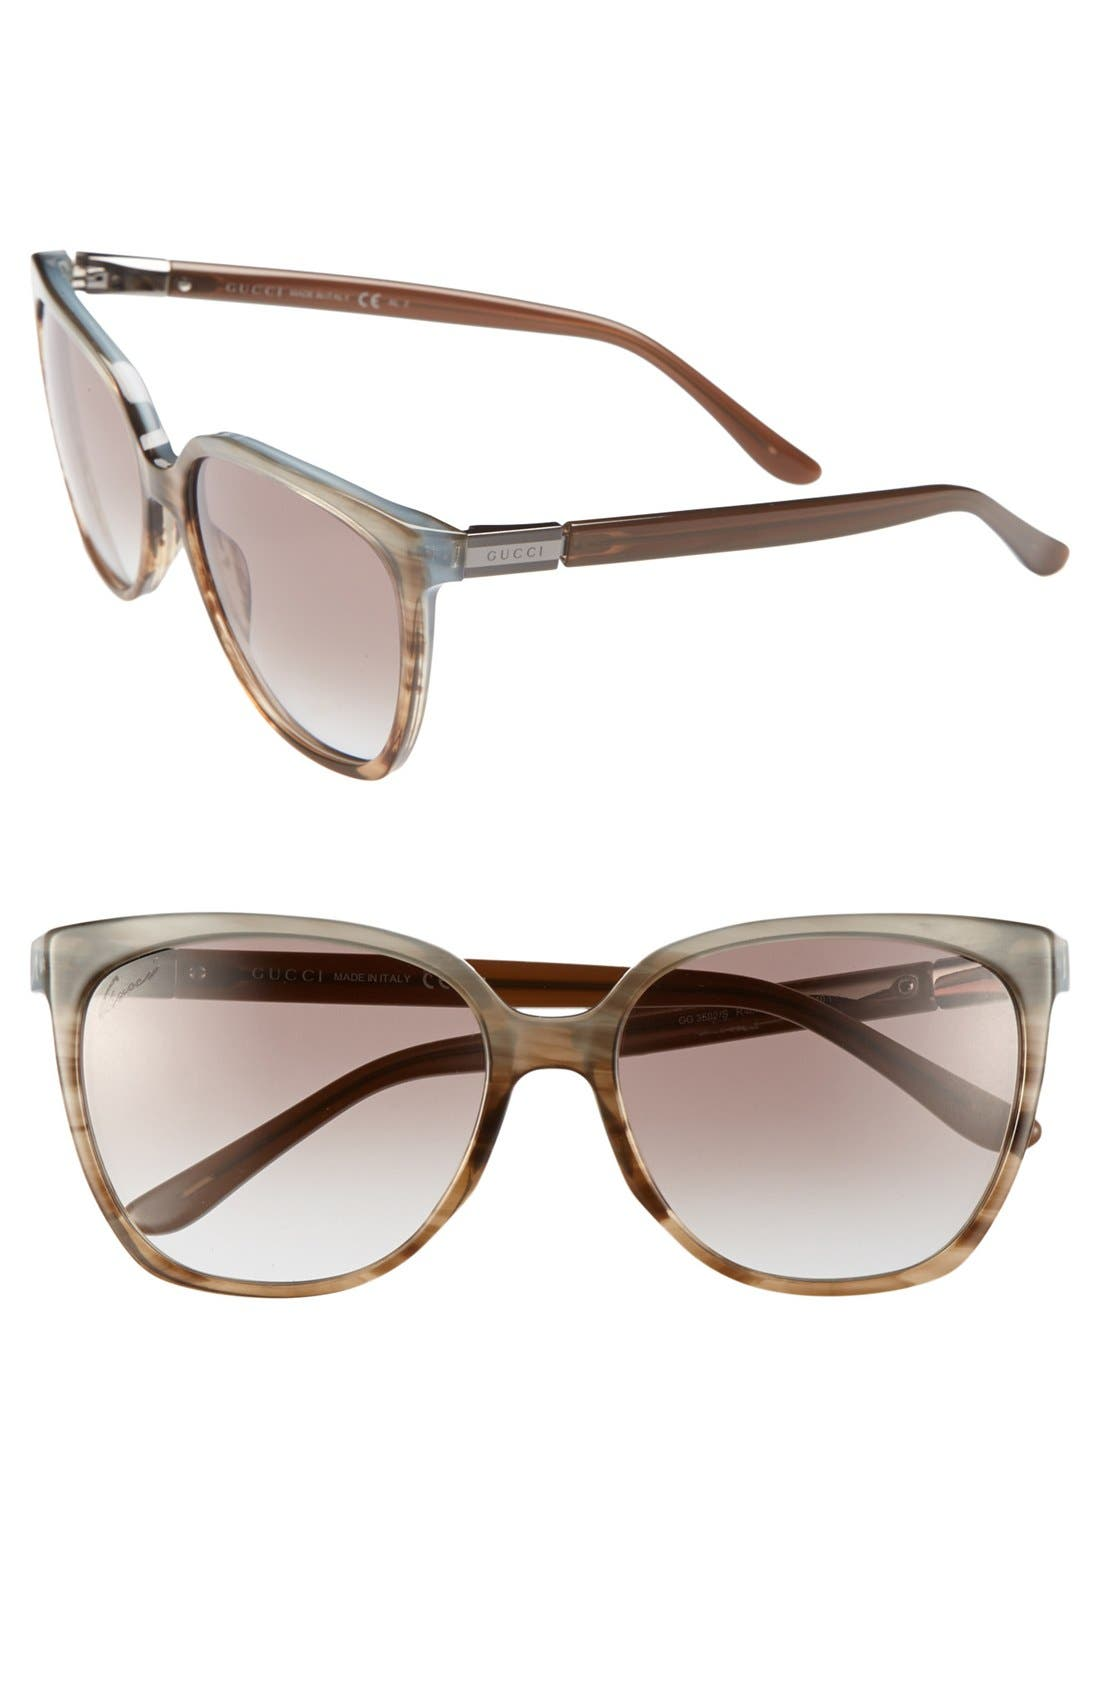 Alternate Image 1 Selected - Gucci 57mm Oversized Sunglasses